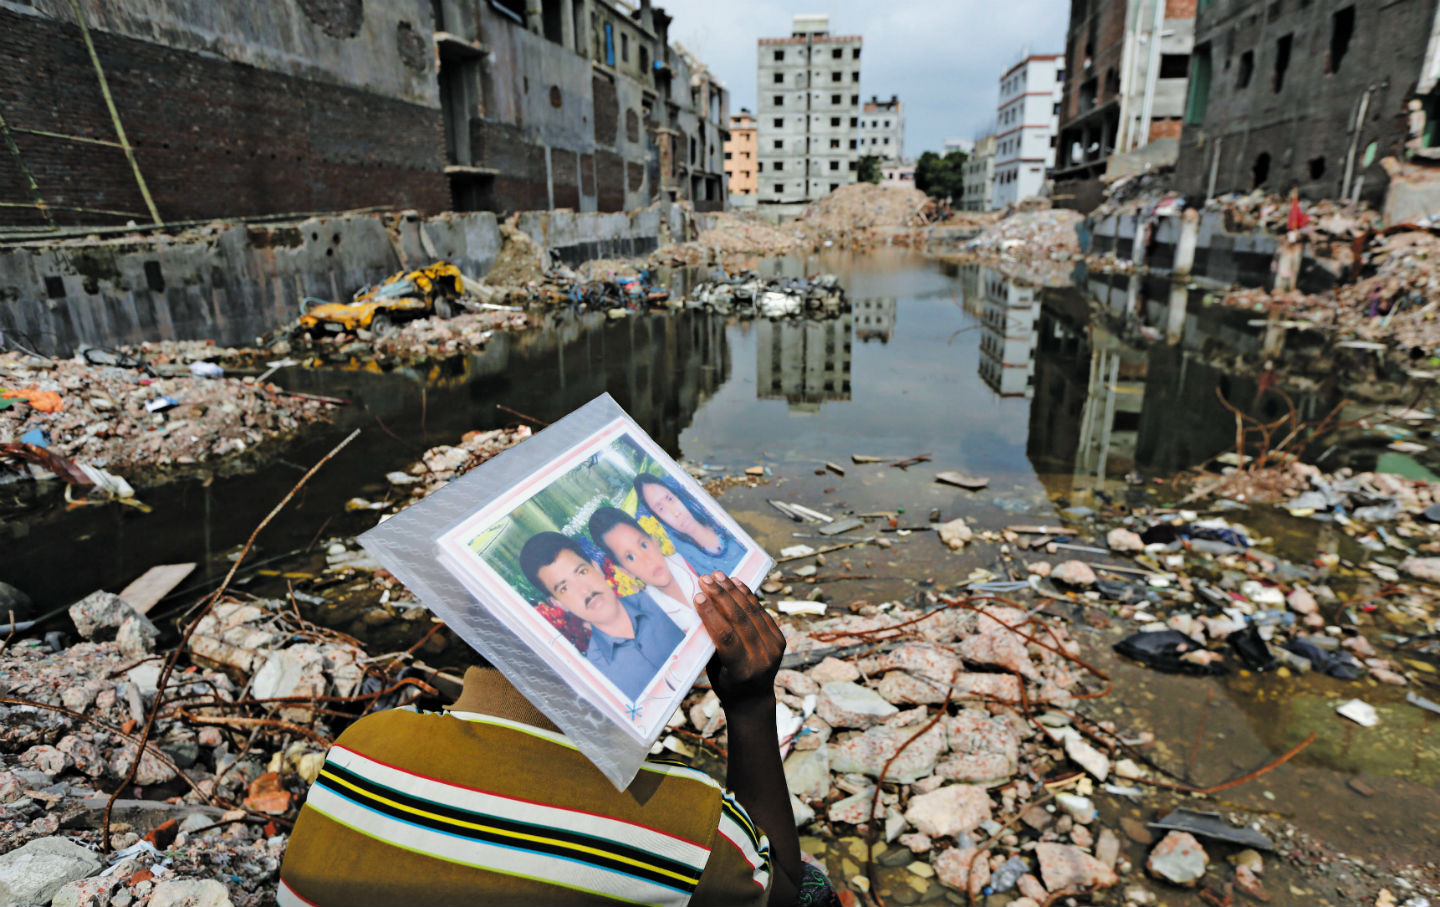 A-man-amidst-the-ruins-of-Rana-Plaza